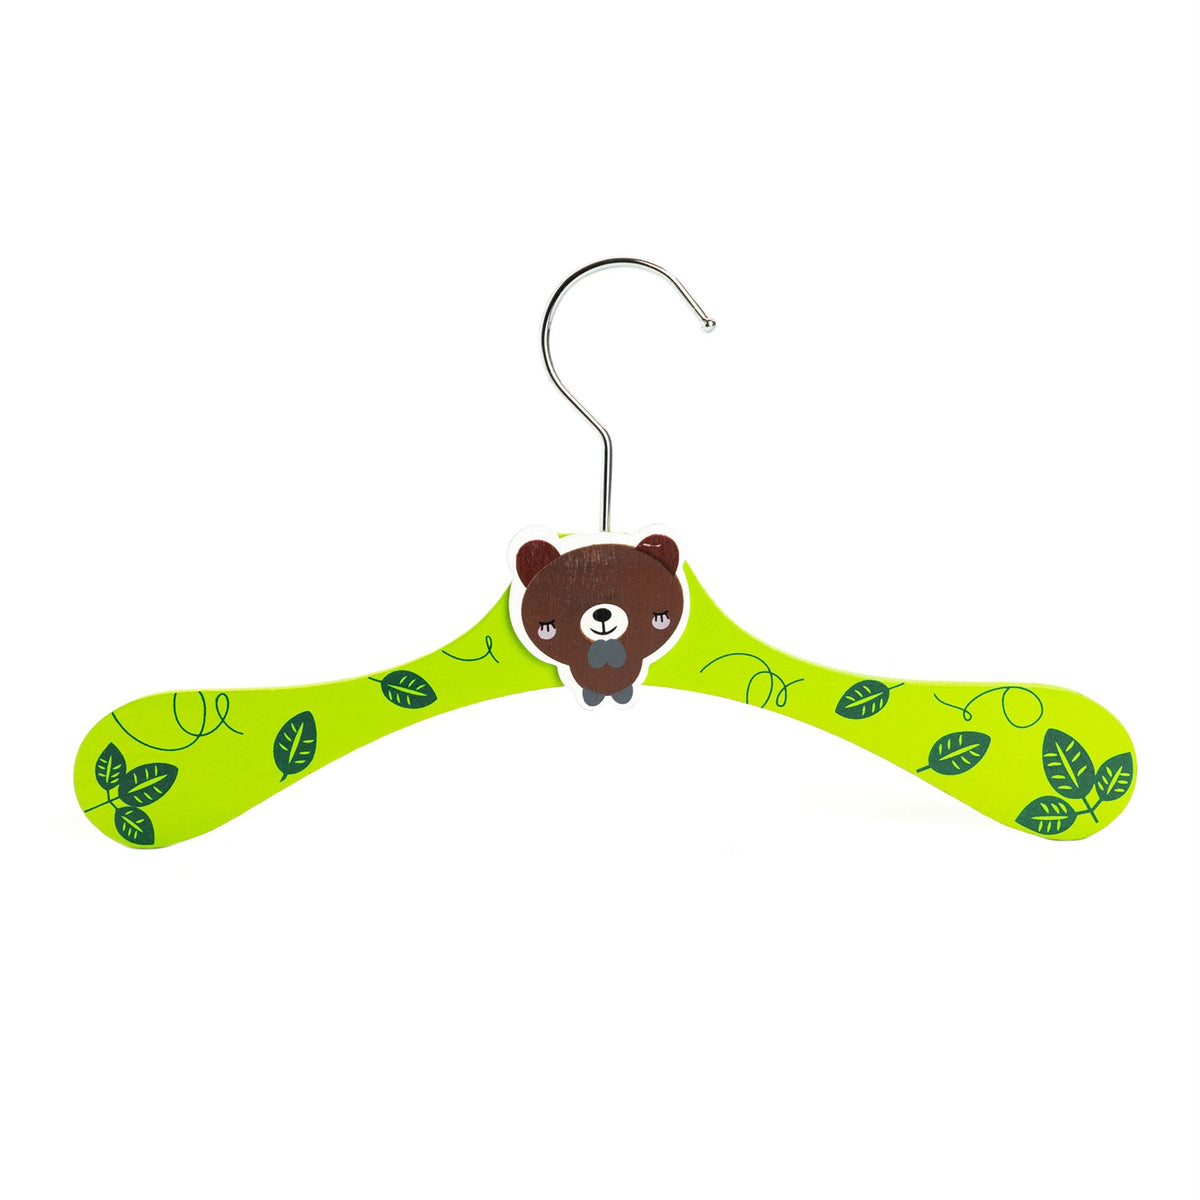 Harbour Housewares Children's Clothes Hanger - Bear